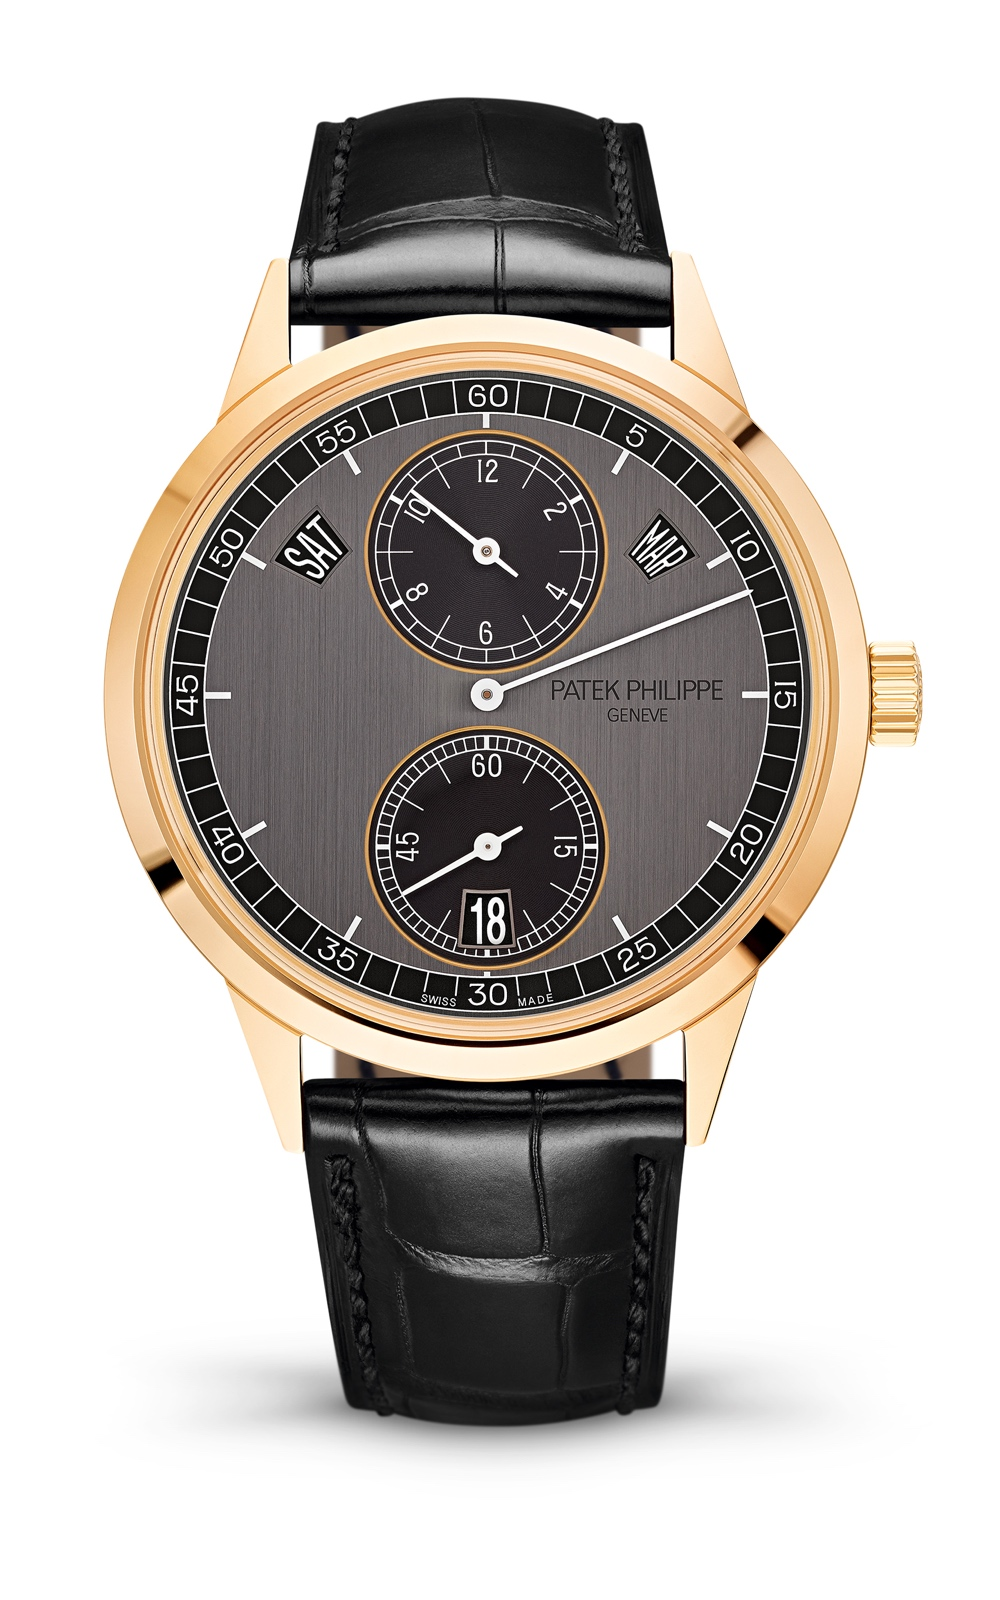 Novedades de Patek Philippe en Baselworld 2019 - 5235/50R-001 Annual Calendar Regulateur